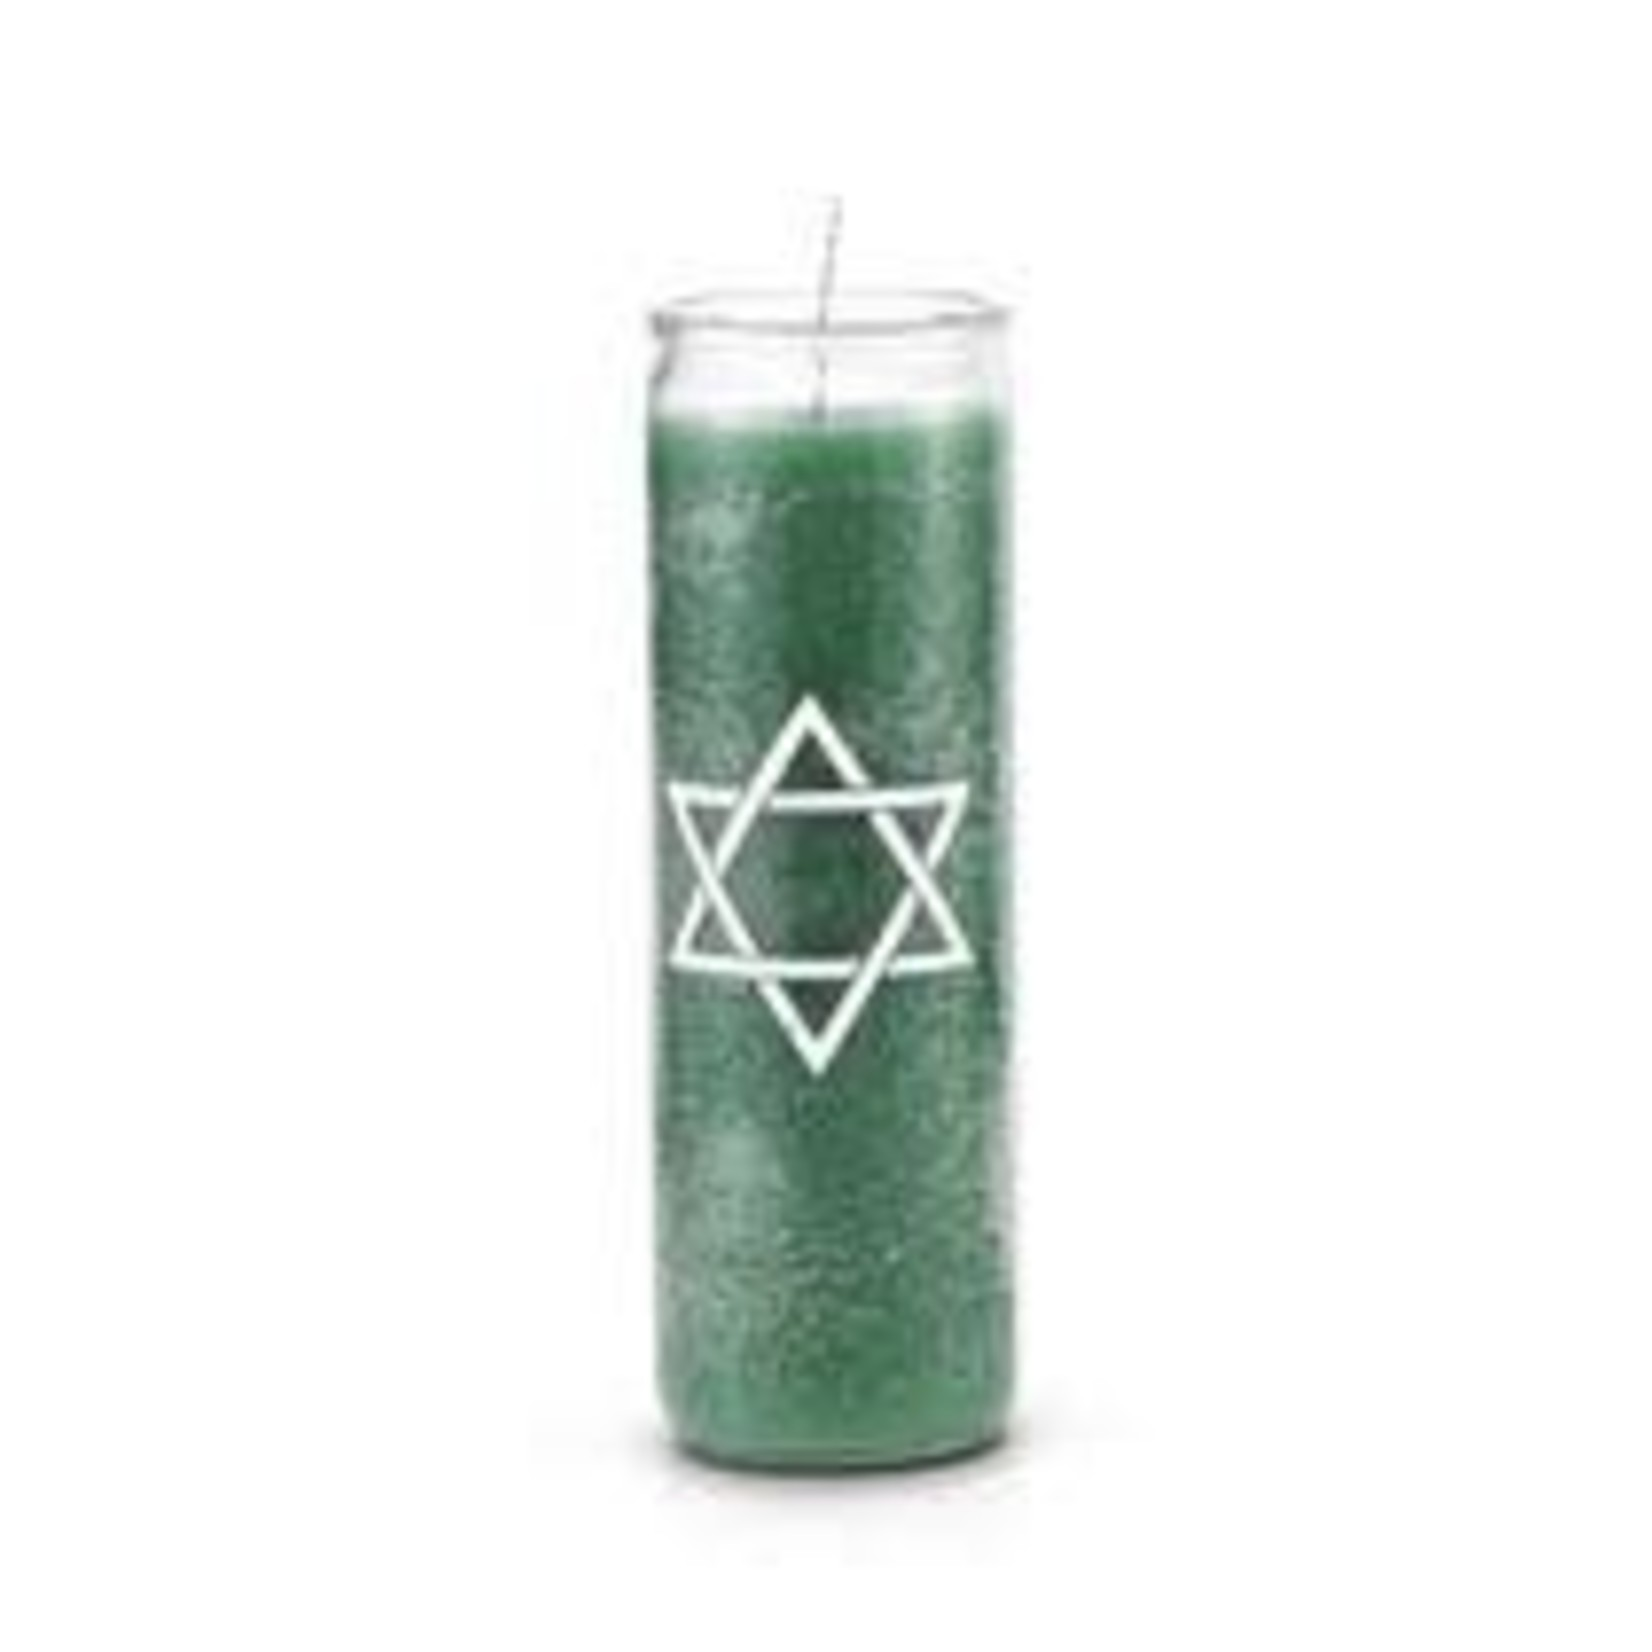 23rd Psalm 7 Day Candle